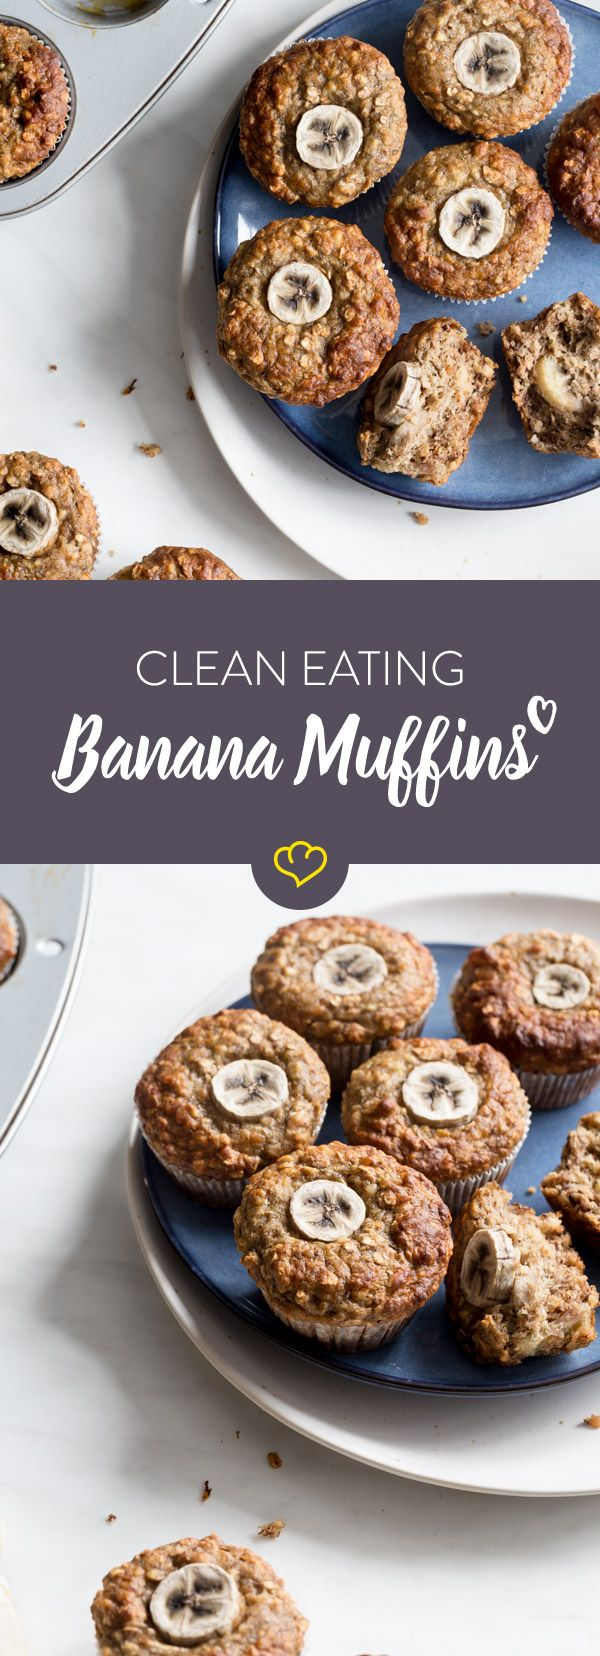 Cleane Bananen-Muffins: Back's dir sauber, back's dir schnell – Carey&CleanEatingS